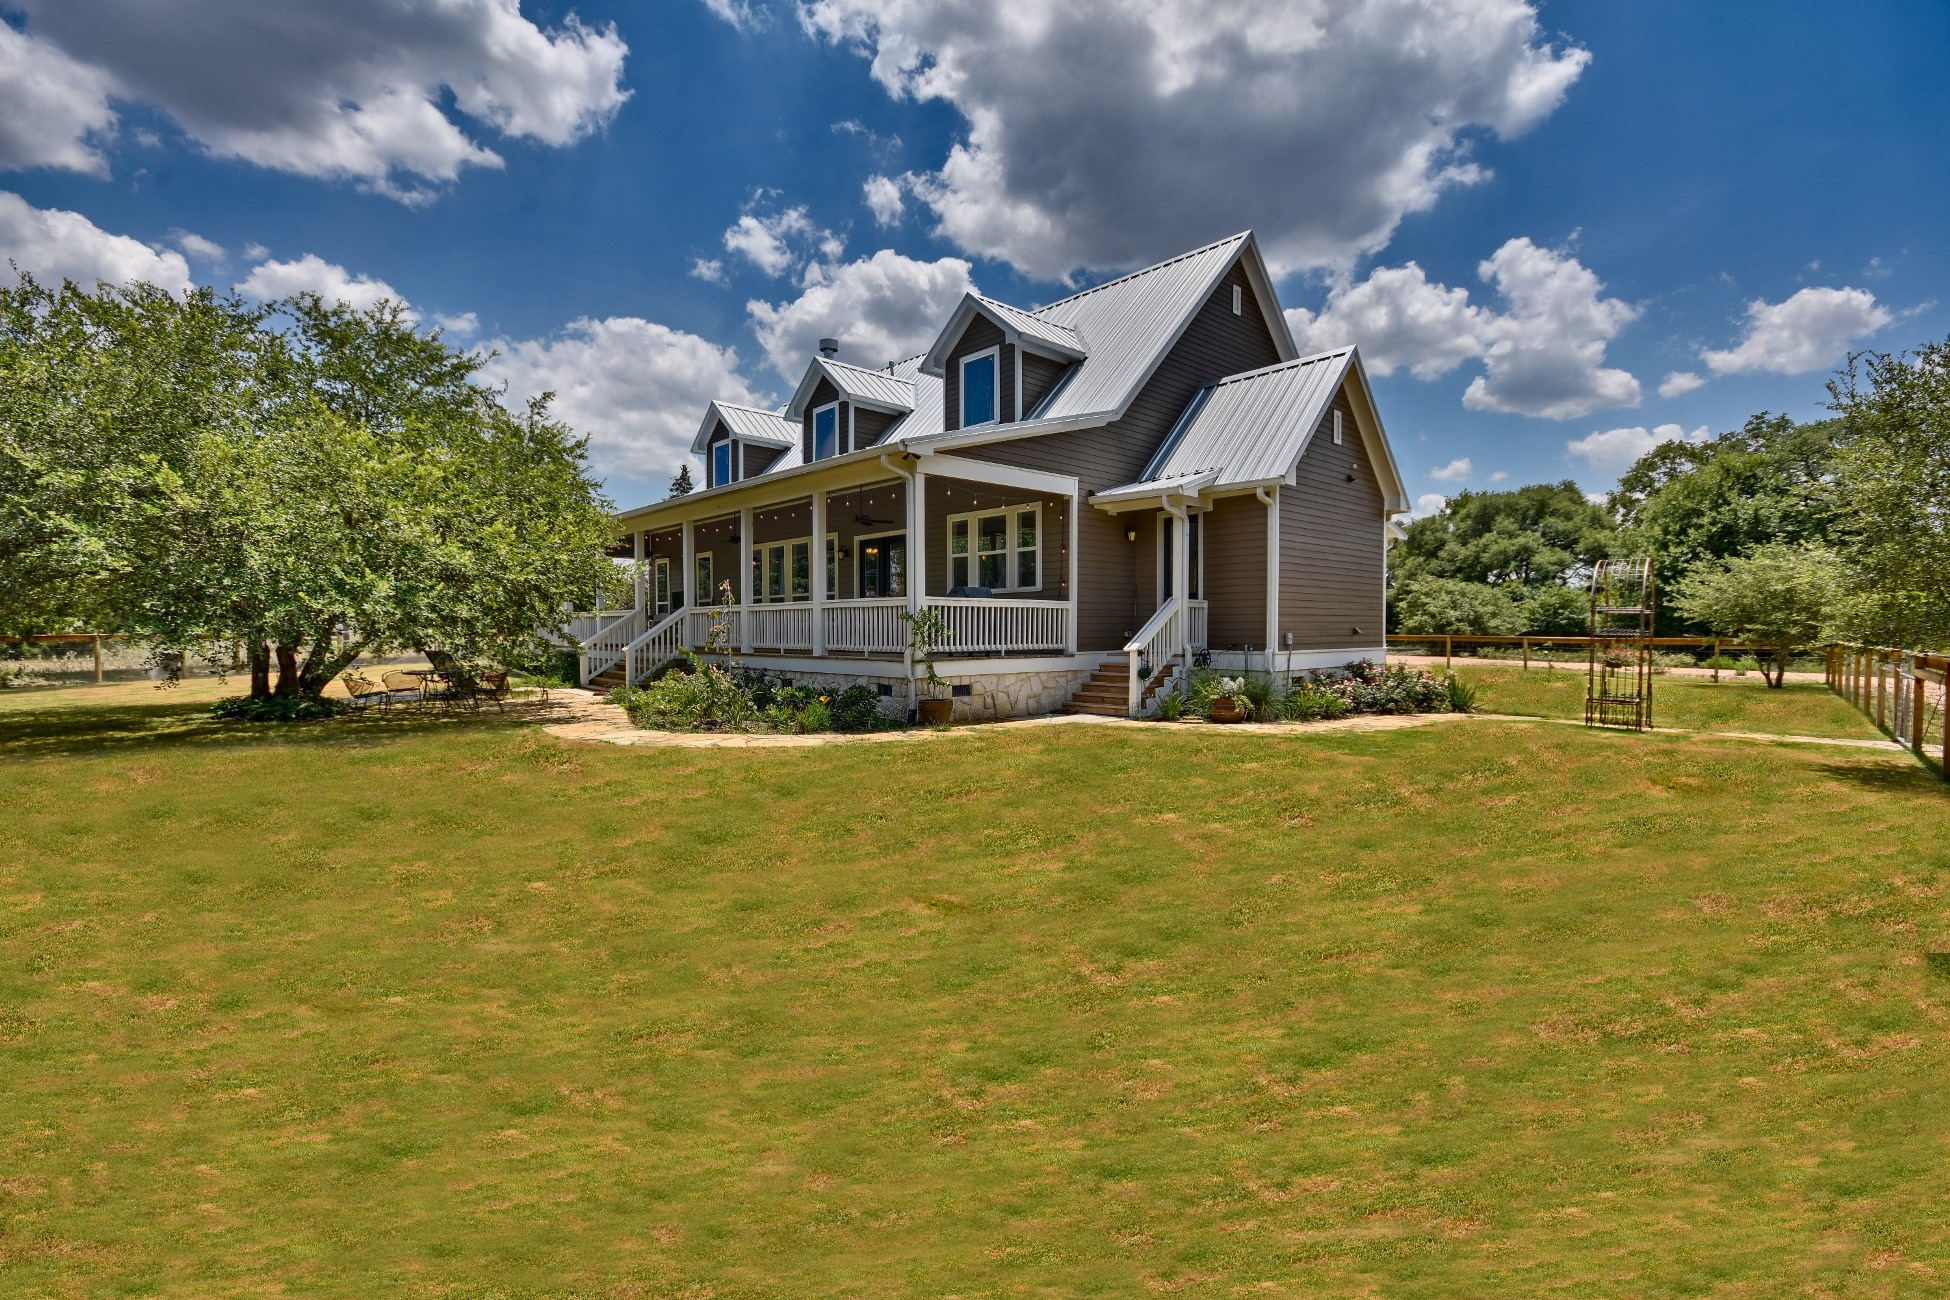 community texas casual park wimberley hill cottages country model home wimberleyweb txcc